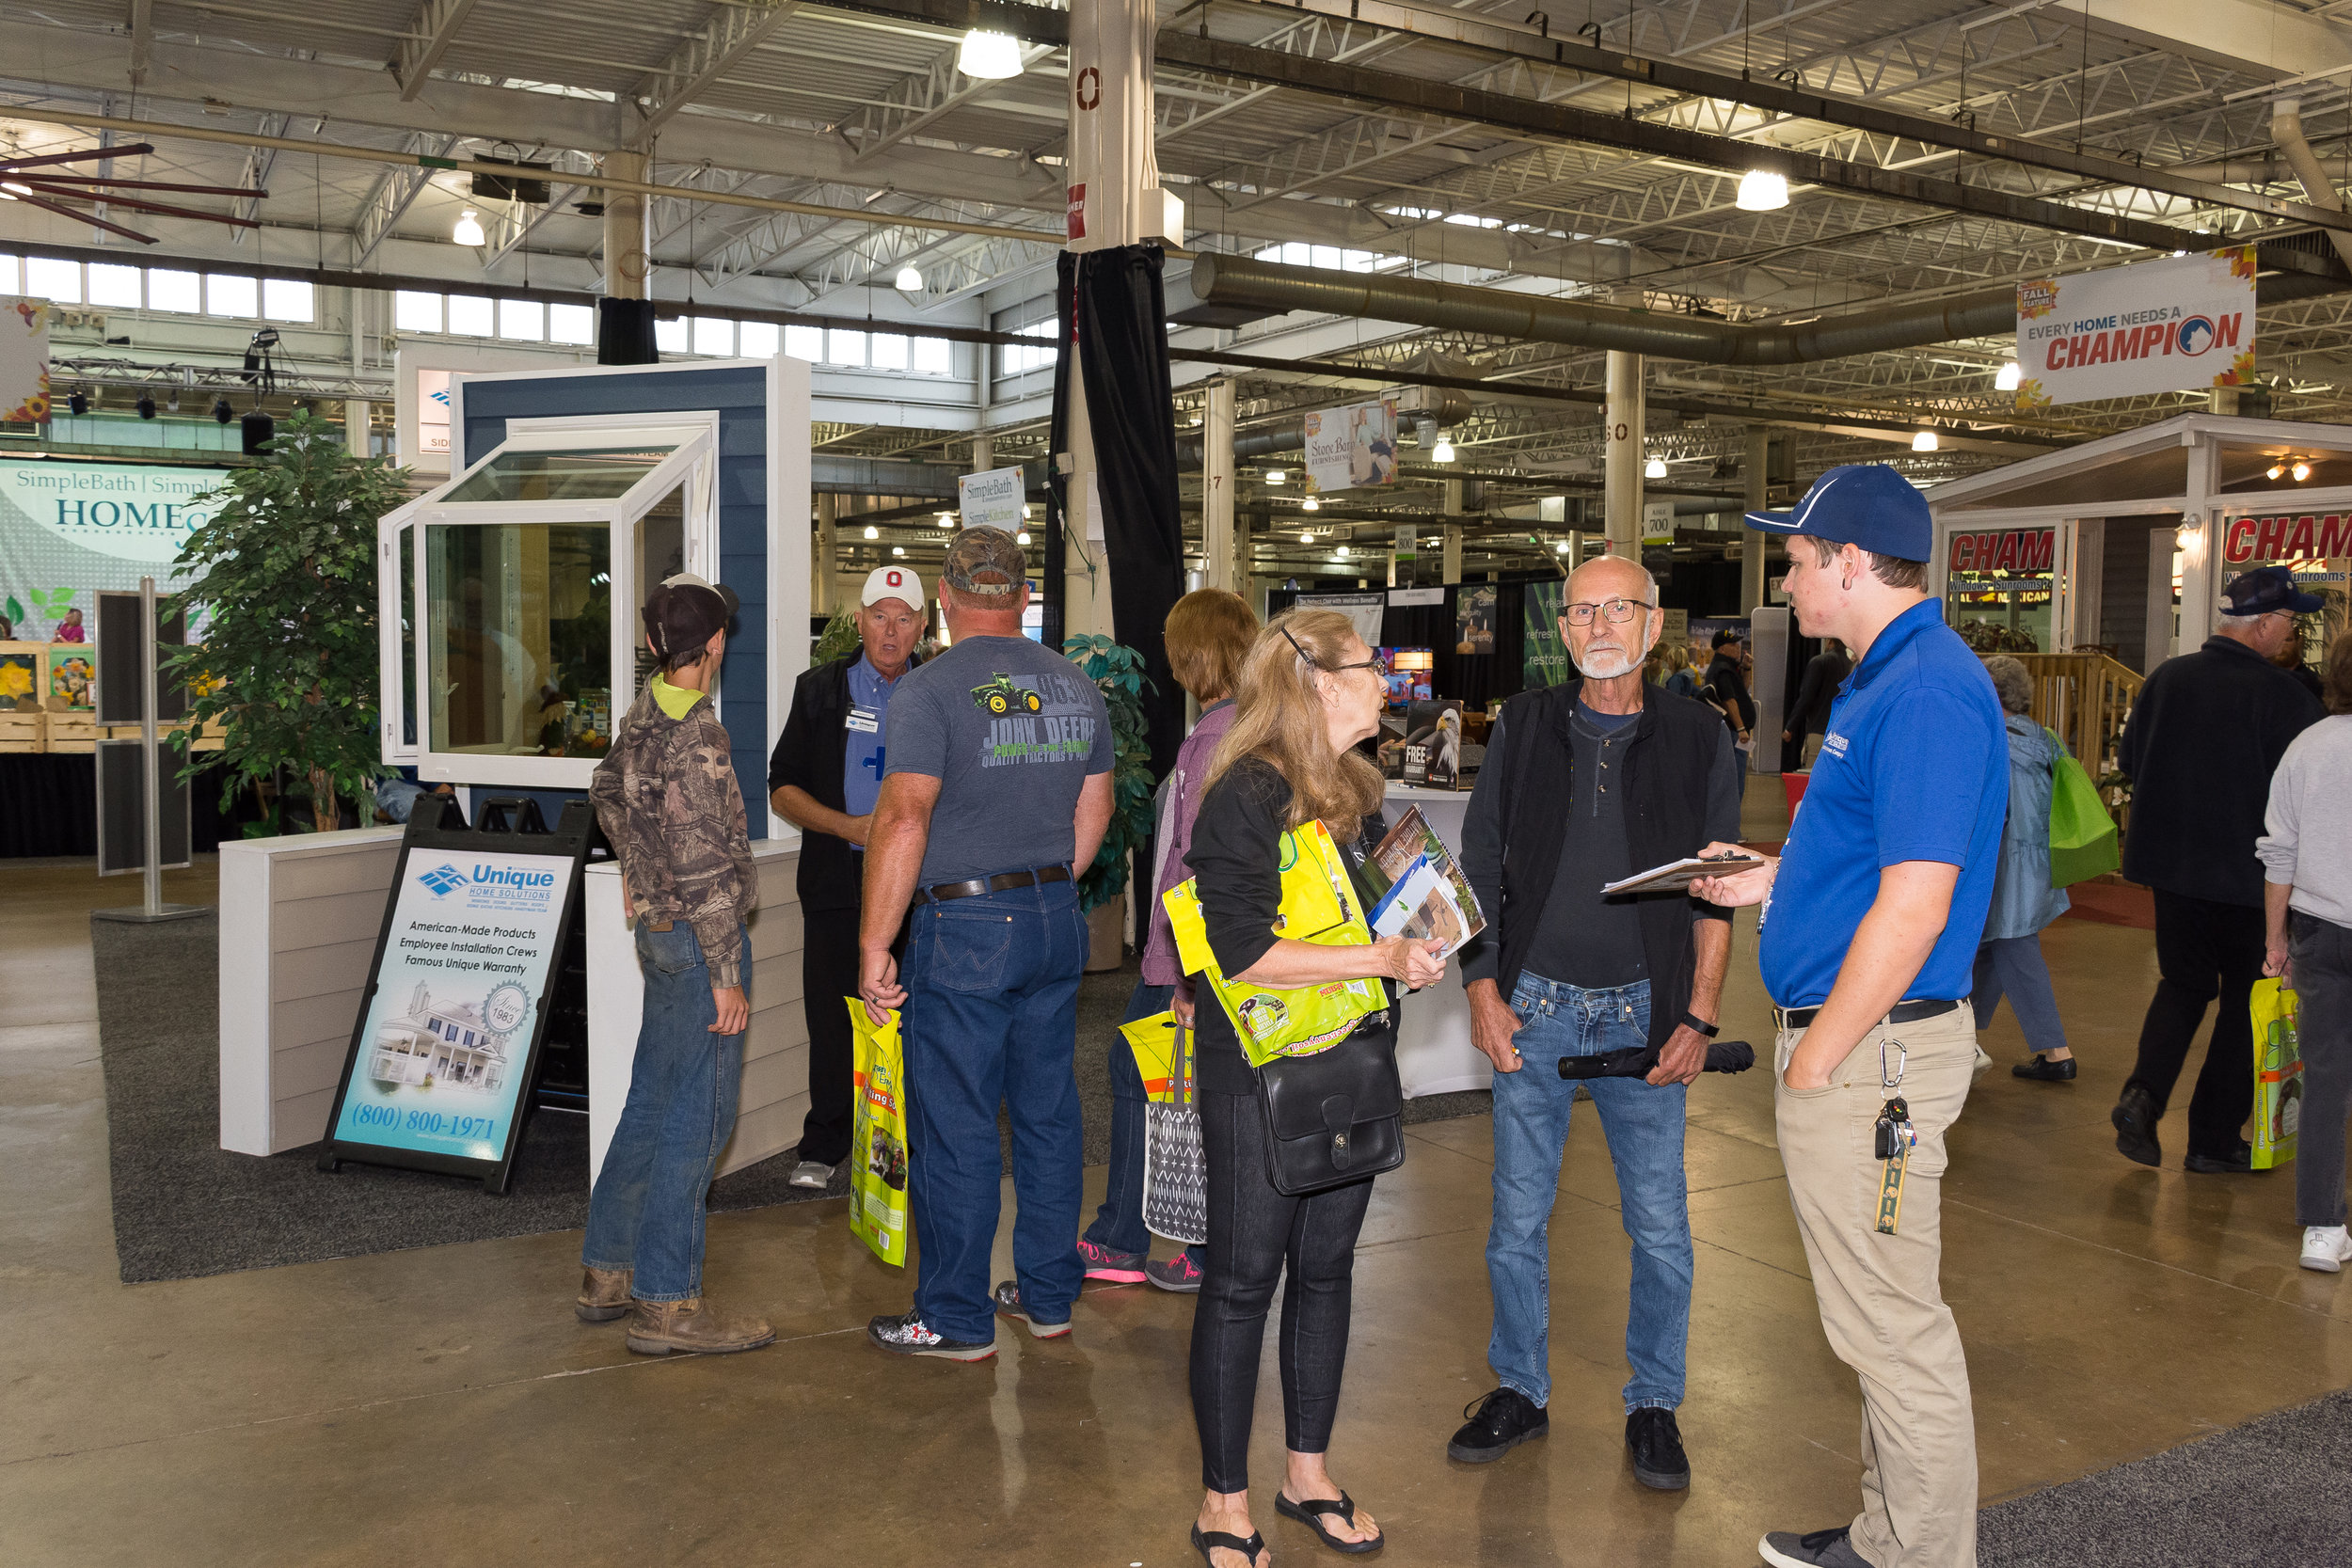 DSC_4473-visitors talking with an exhibitor.JPG